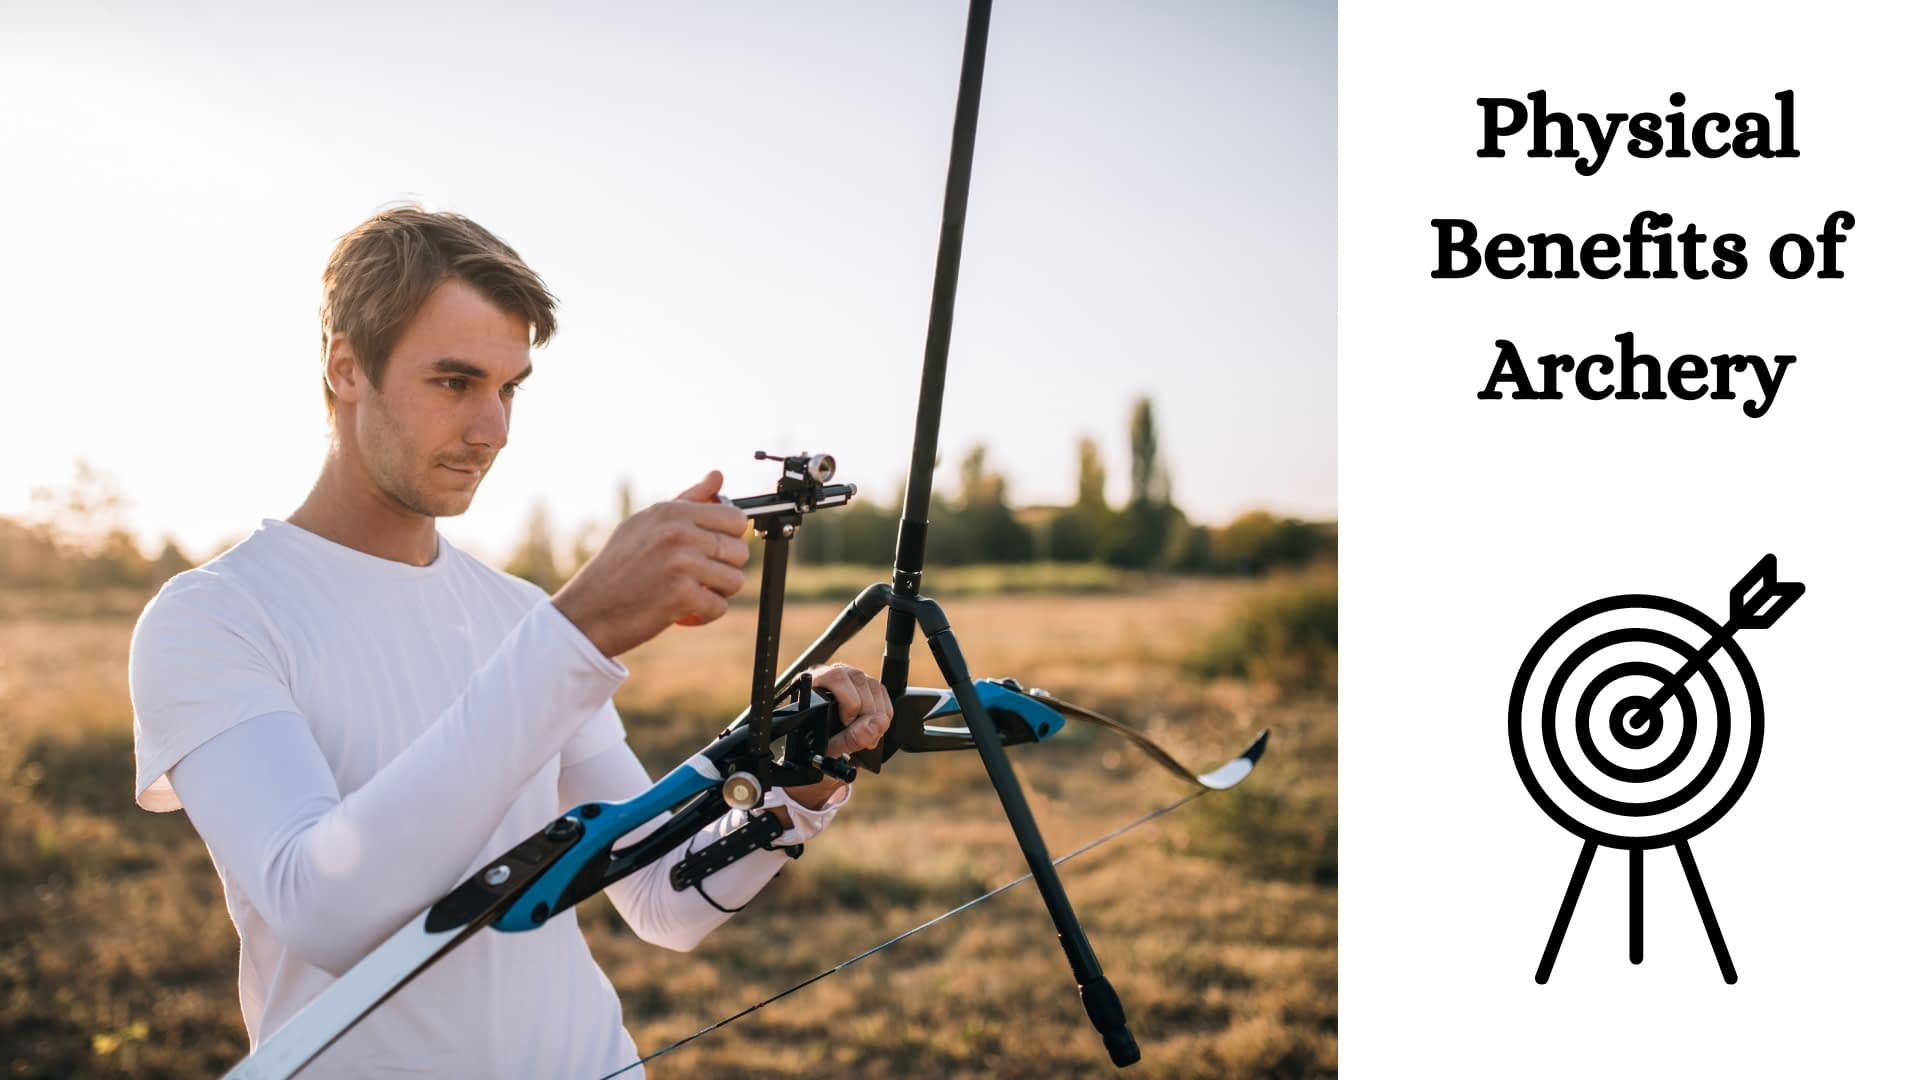 Physical Benefits of Archery